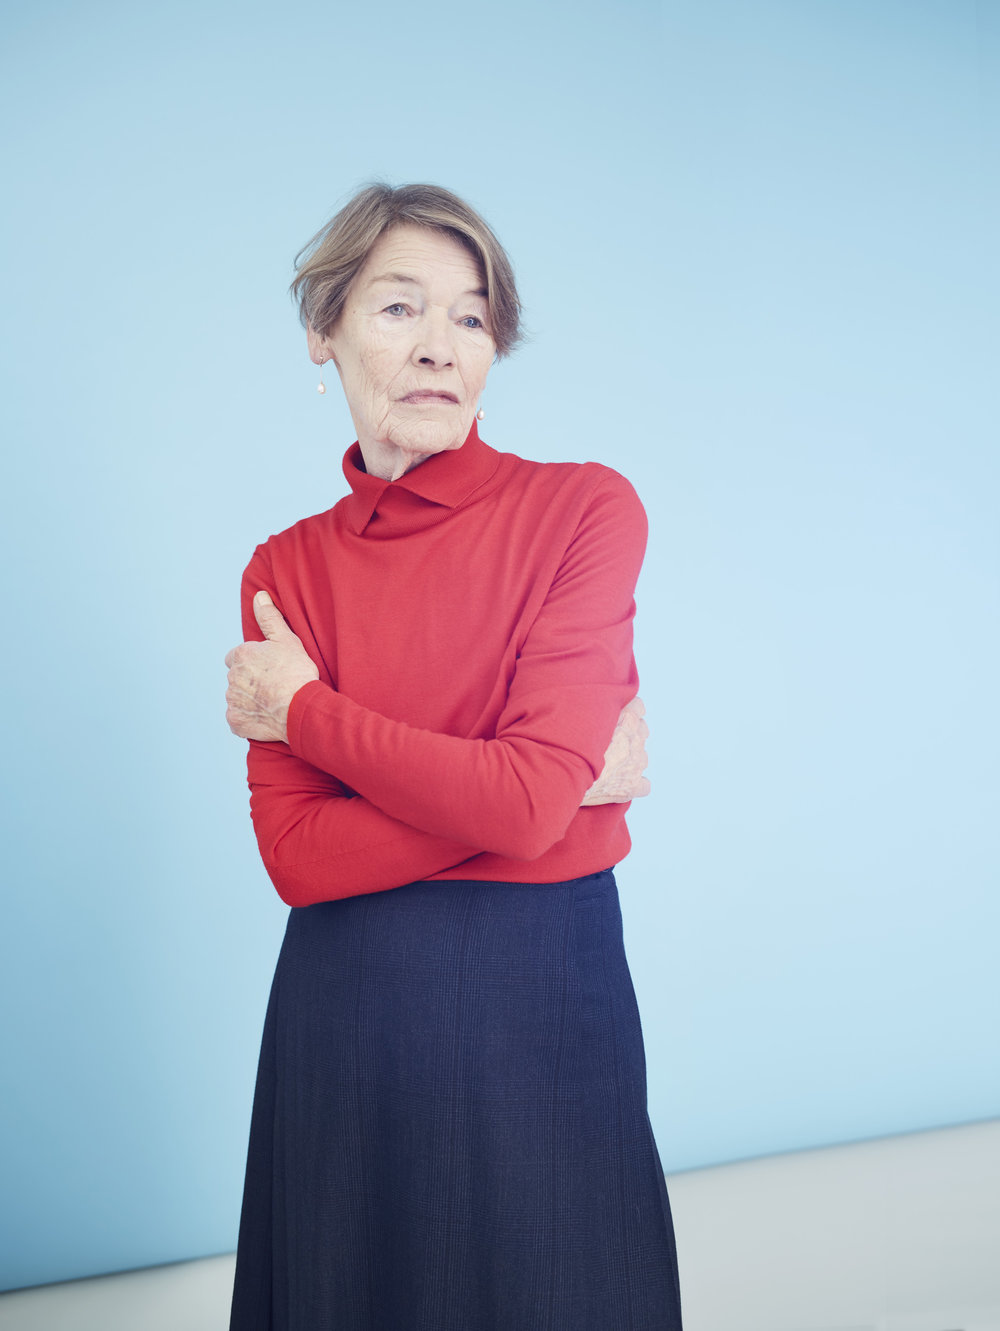 Glenda Jackson photographed by Chris Floyd represented by Flock